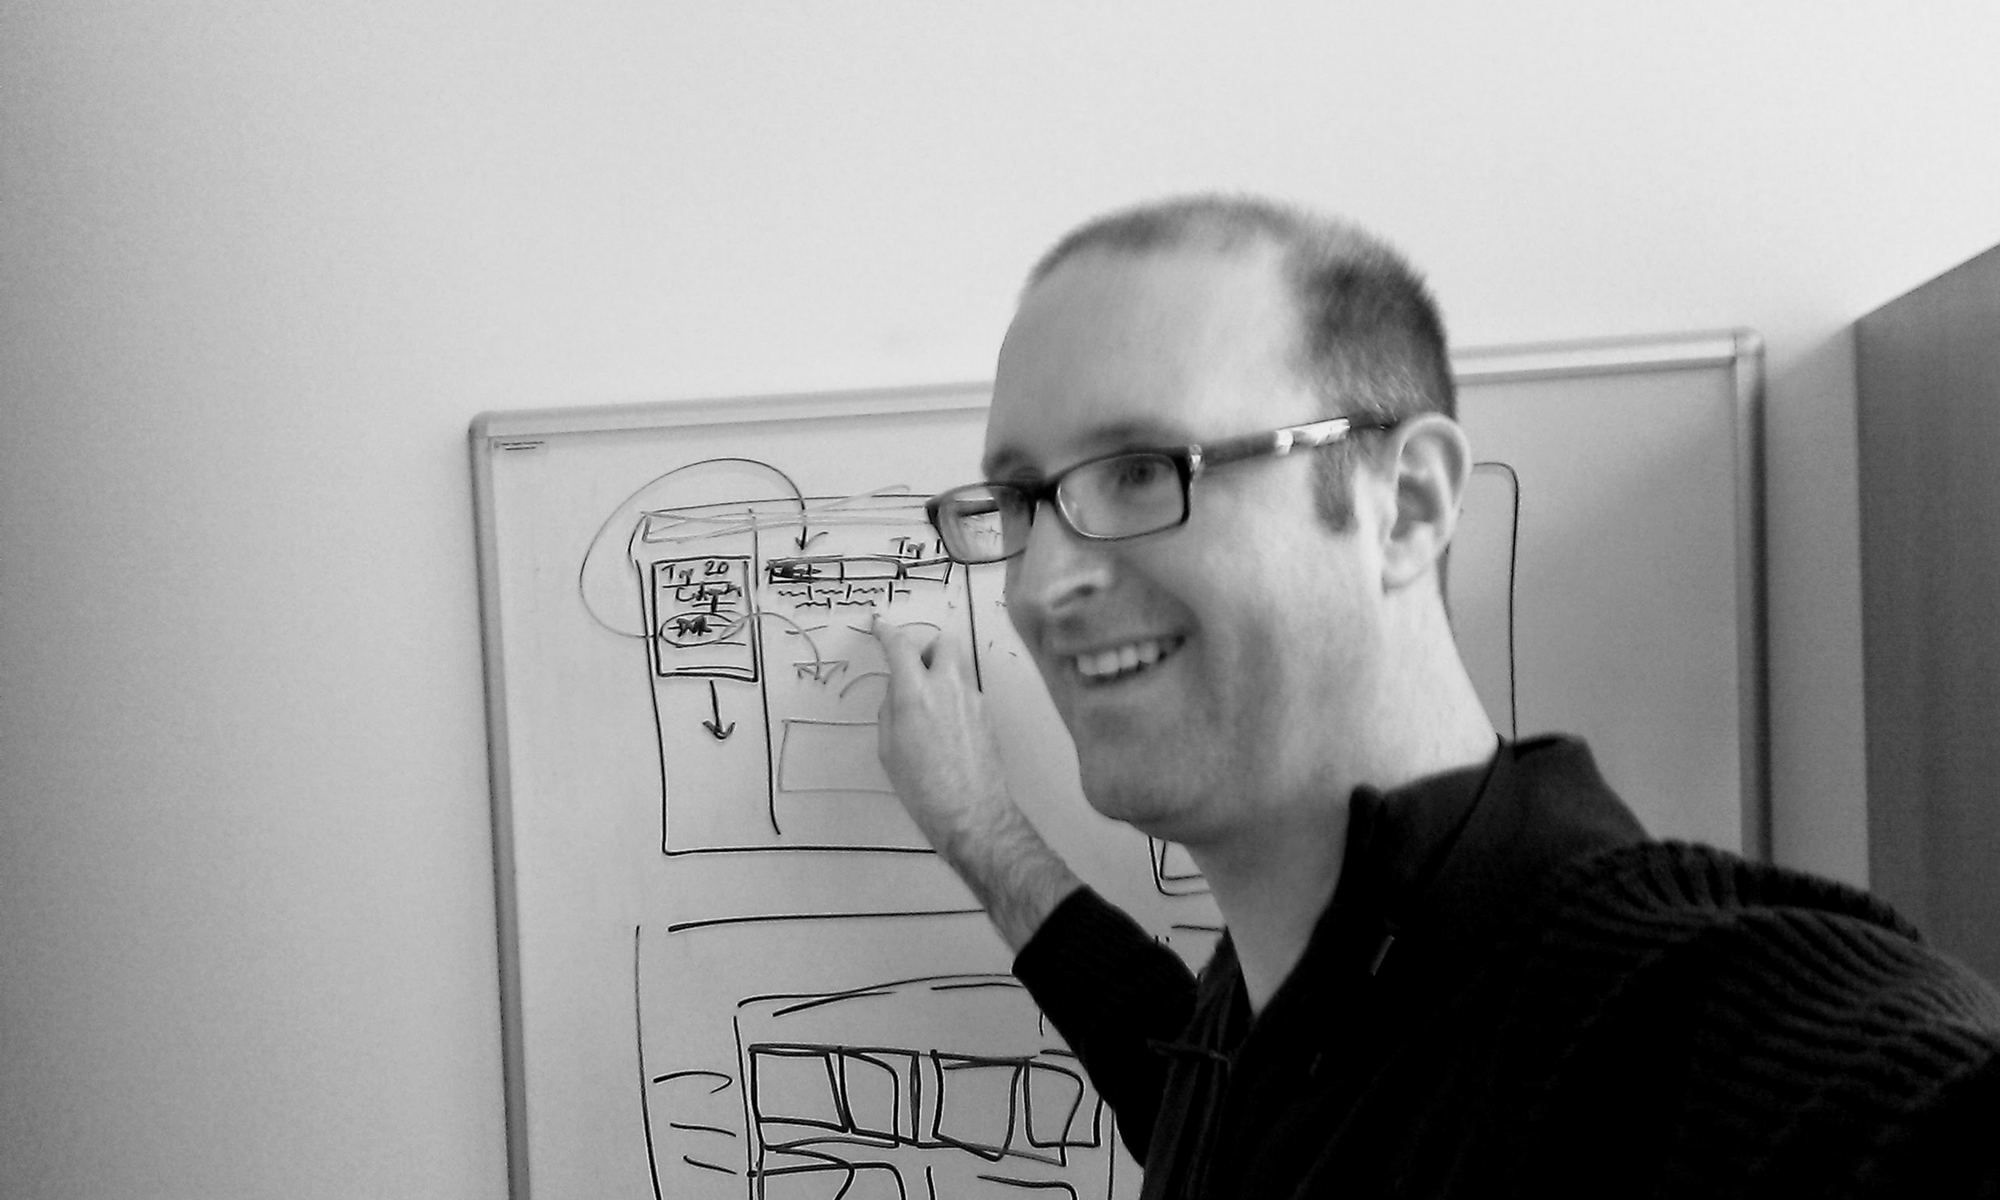 UX research and design, usability and market research moderation